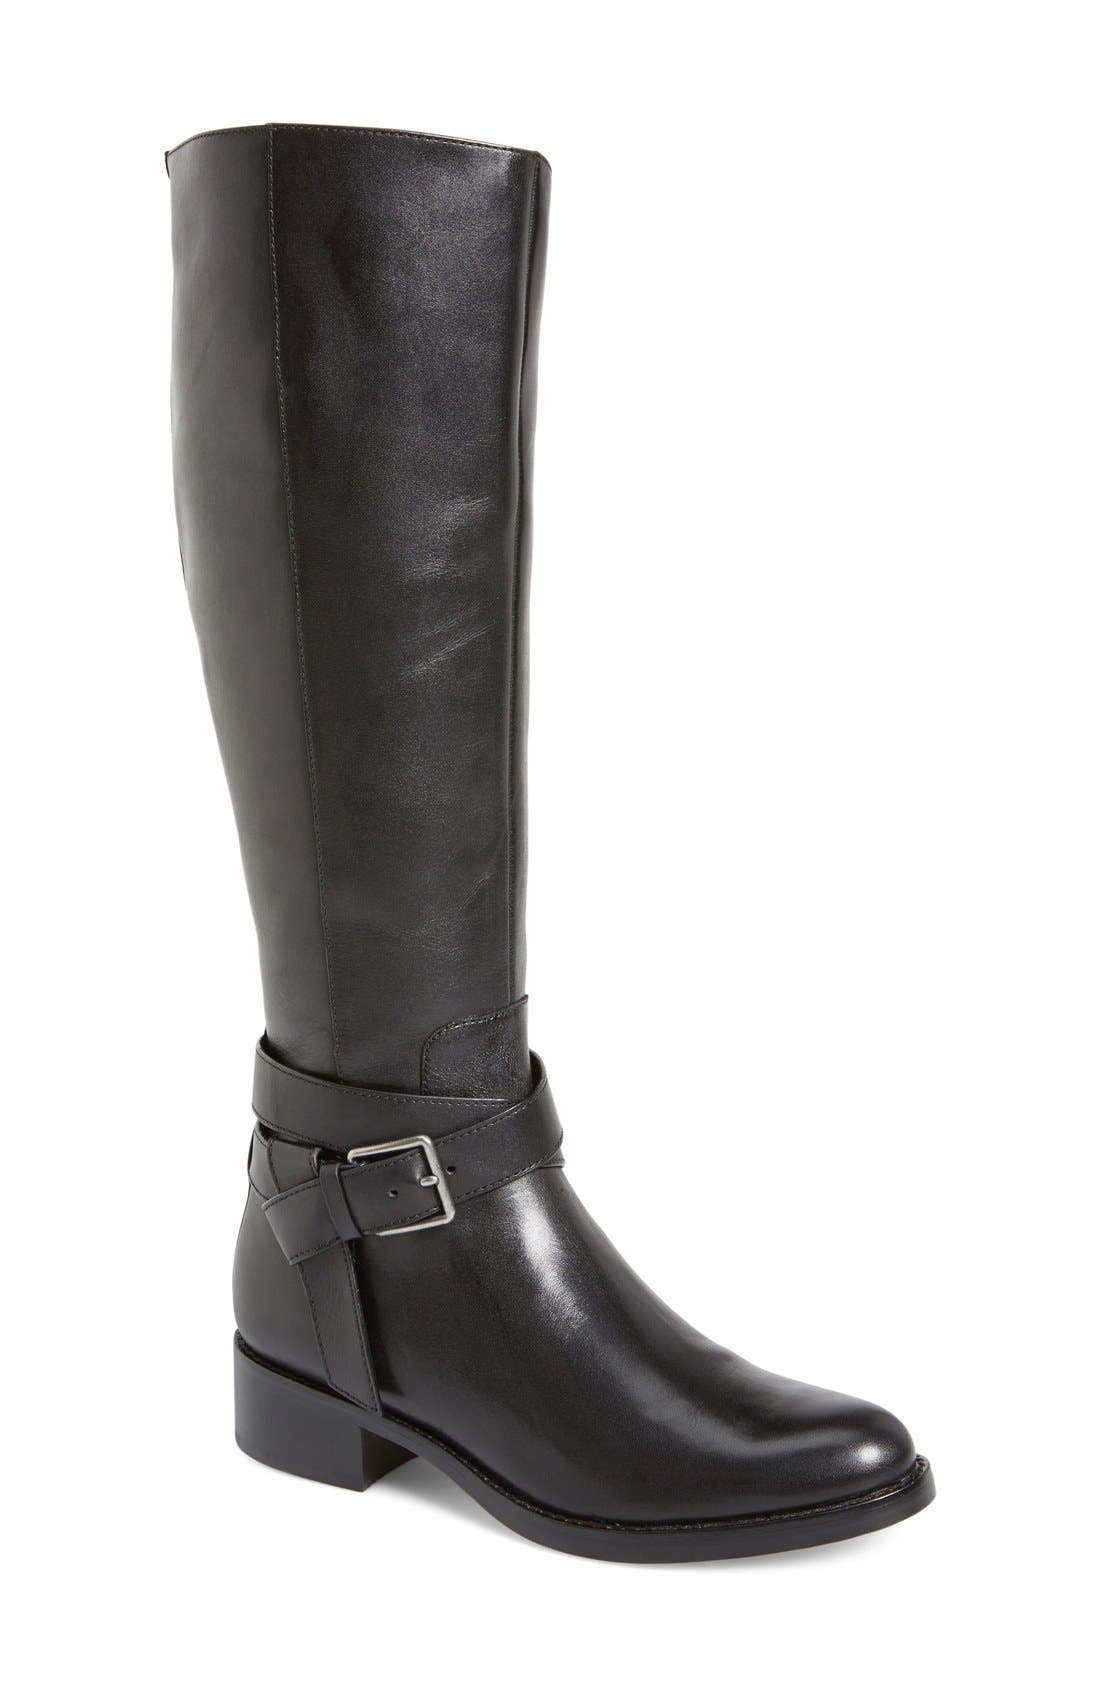 COLE HAAN 'Briarcliff' Riding Boot, Main, color, 001